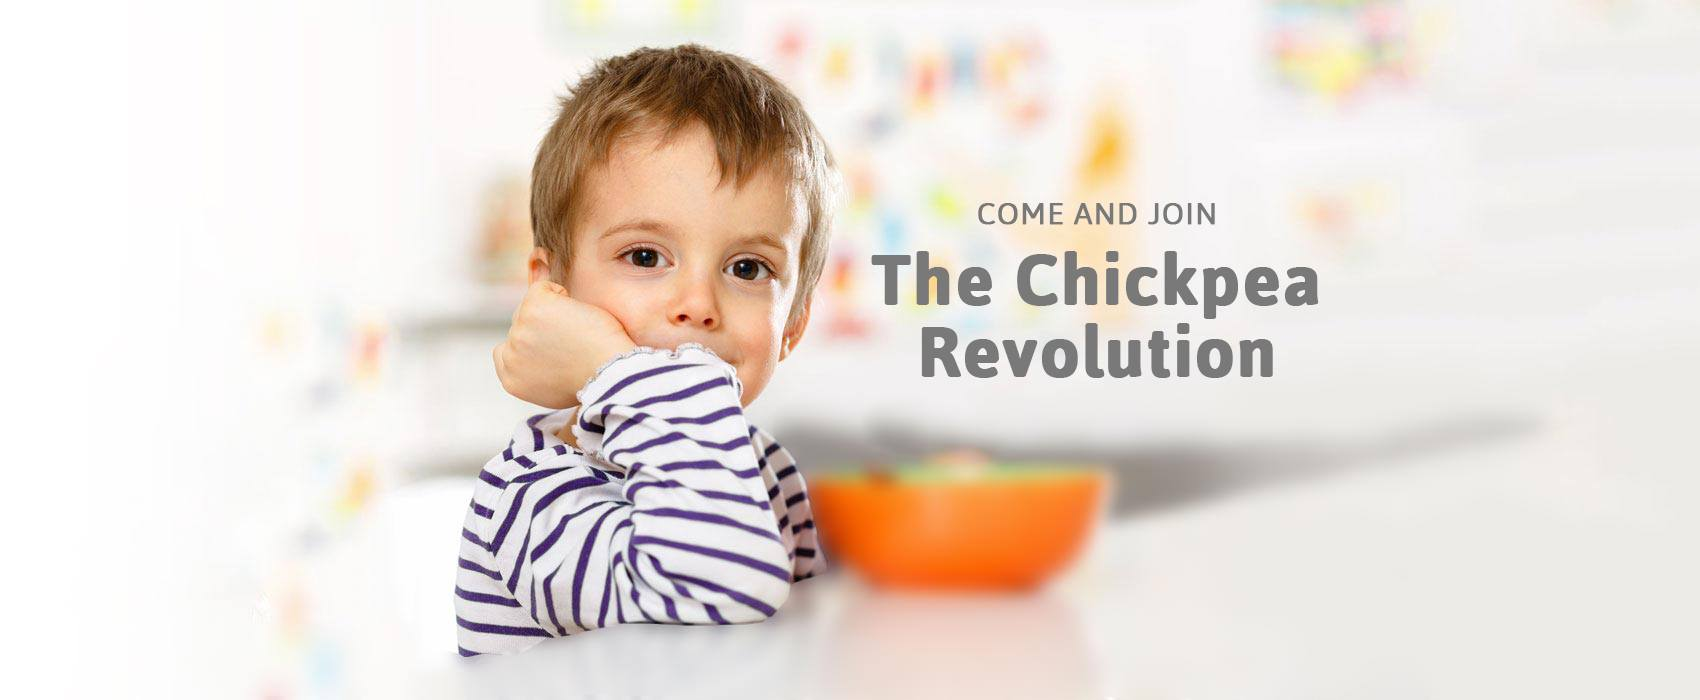 Come and join the Chickpea Revolution